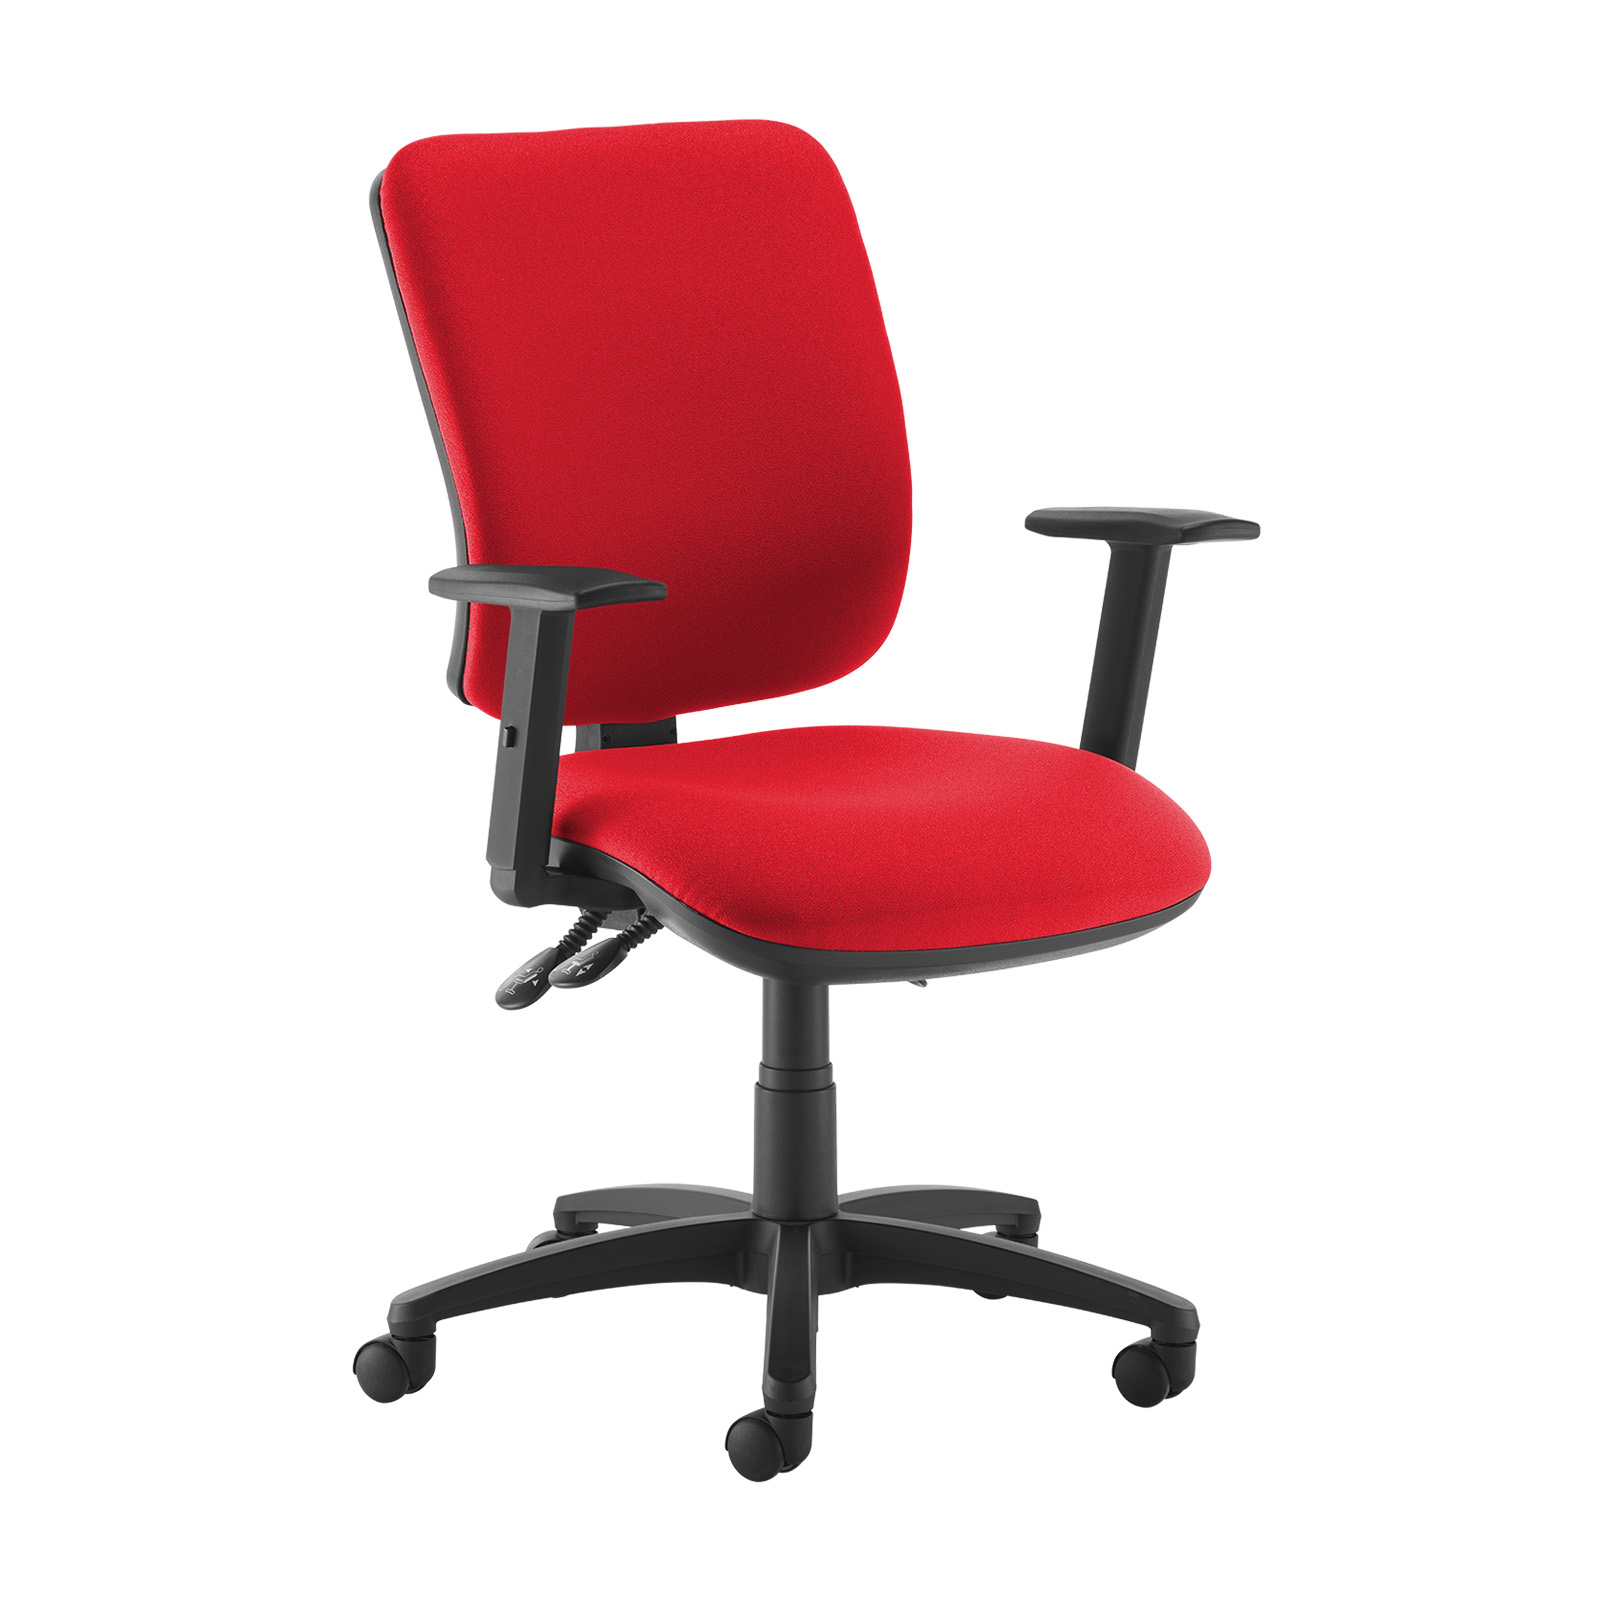 Desk Chairs Senza high back operator chair with adjustable arms - red